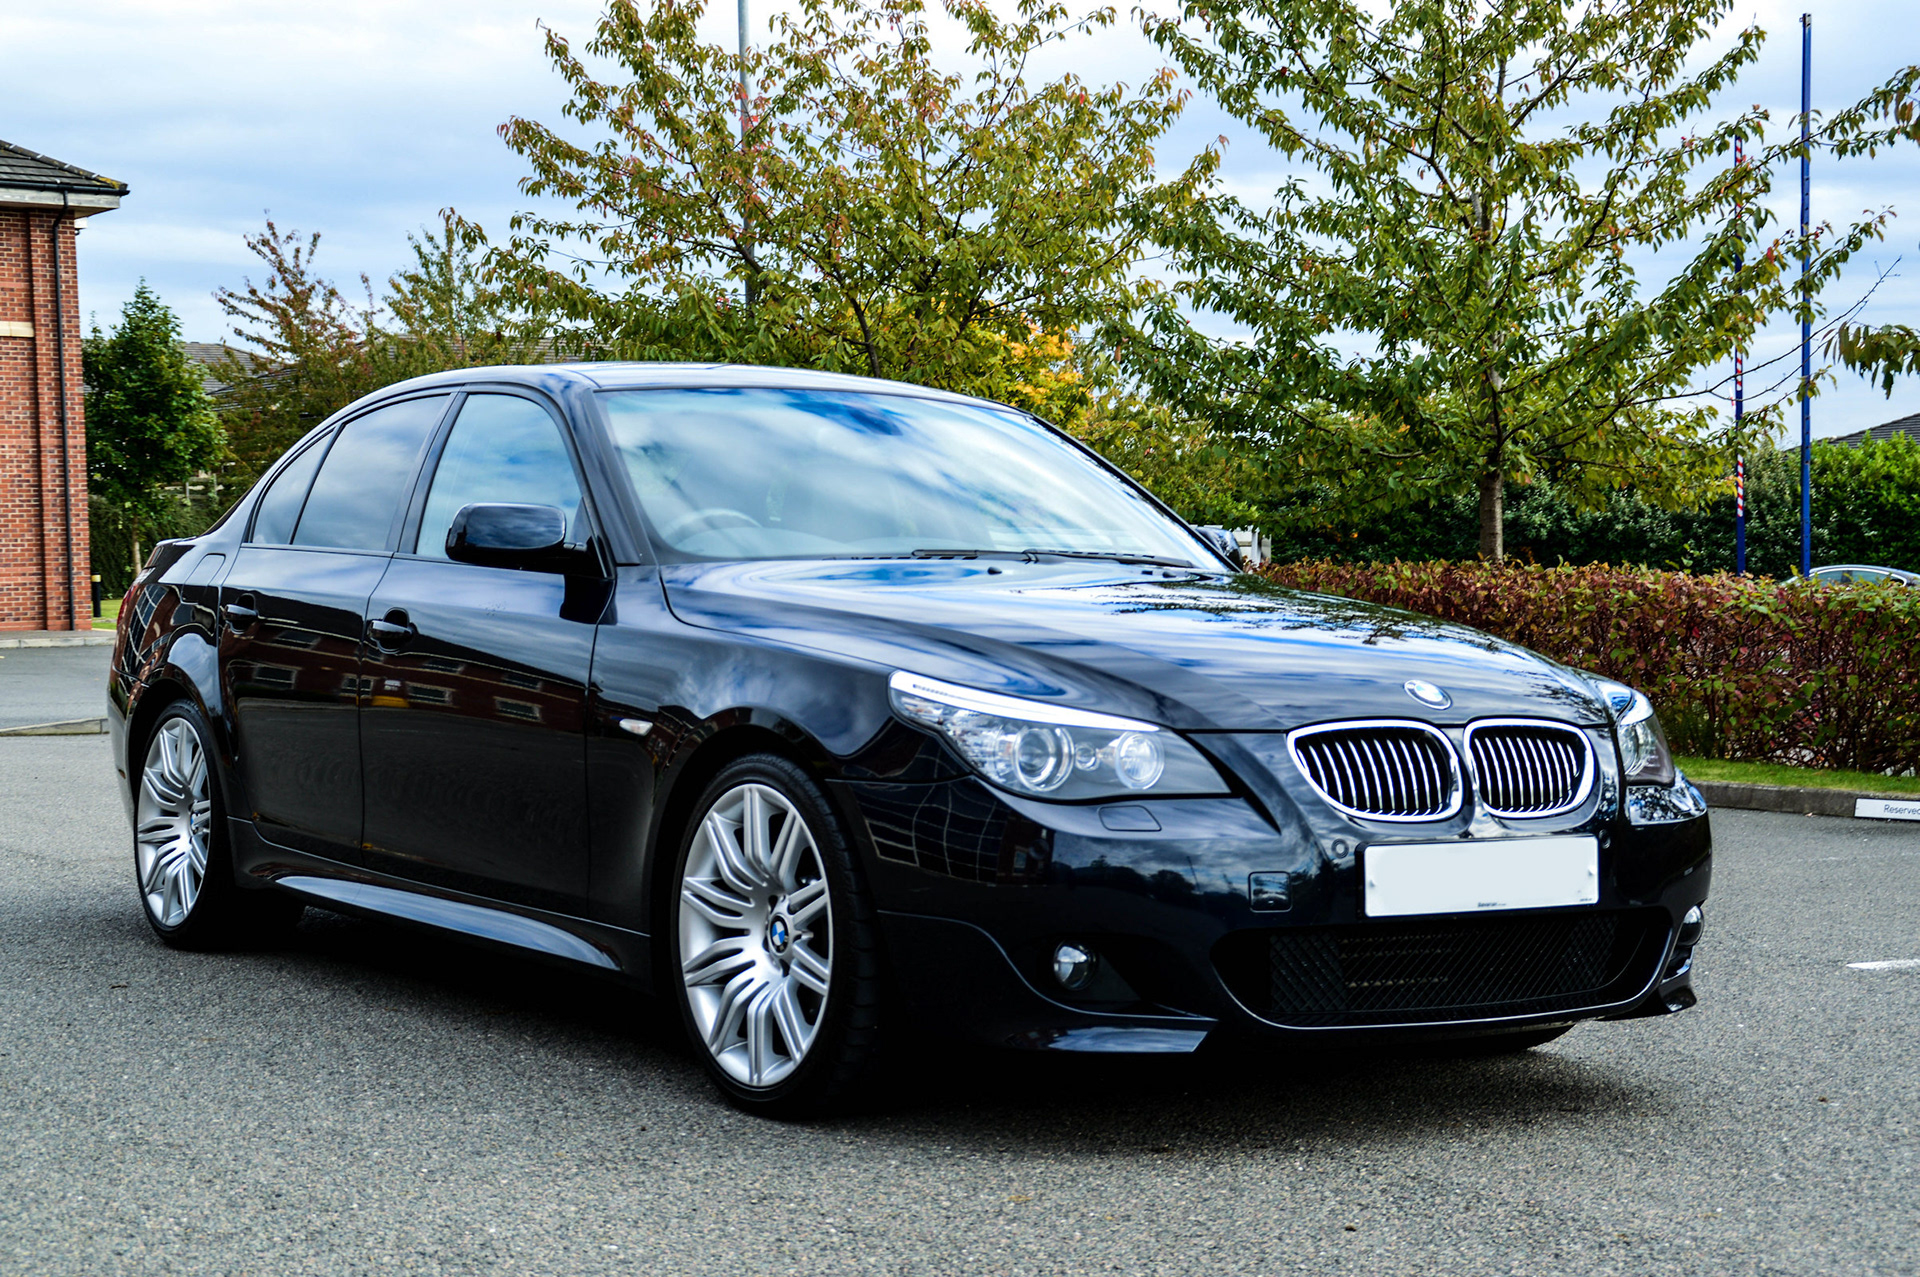 Jet One Gallery - BMW E60 530i LCI M Sport